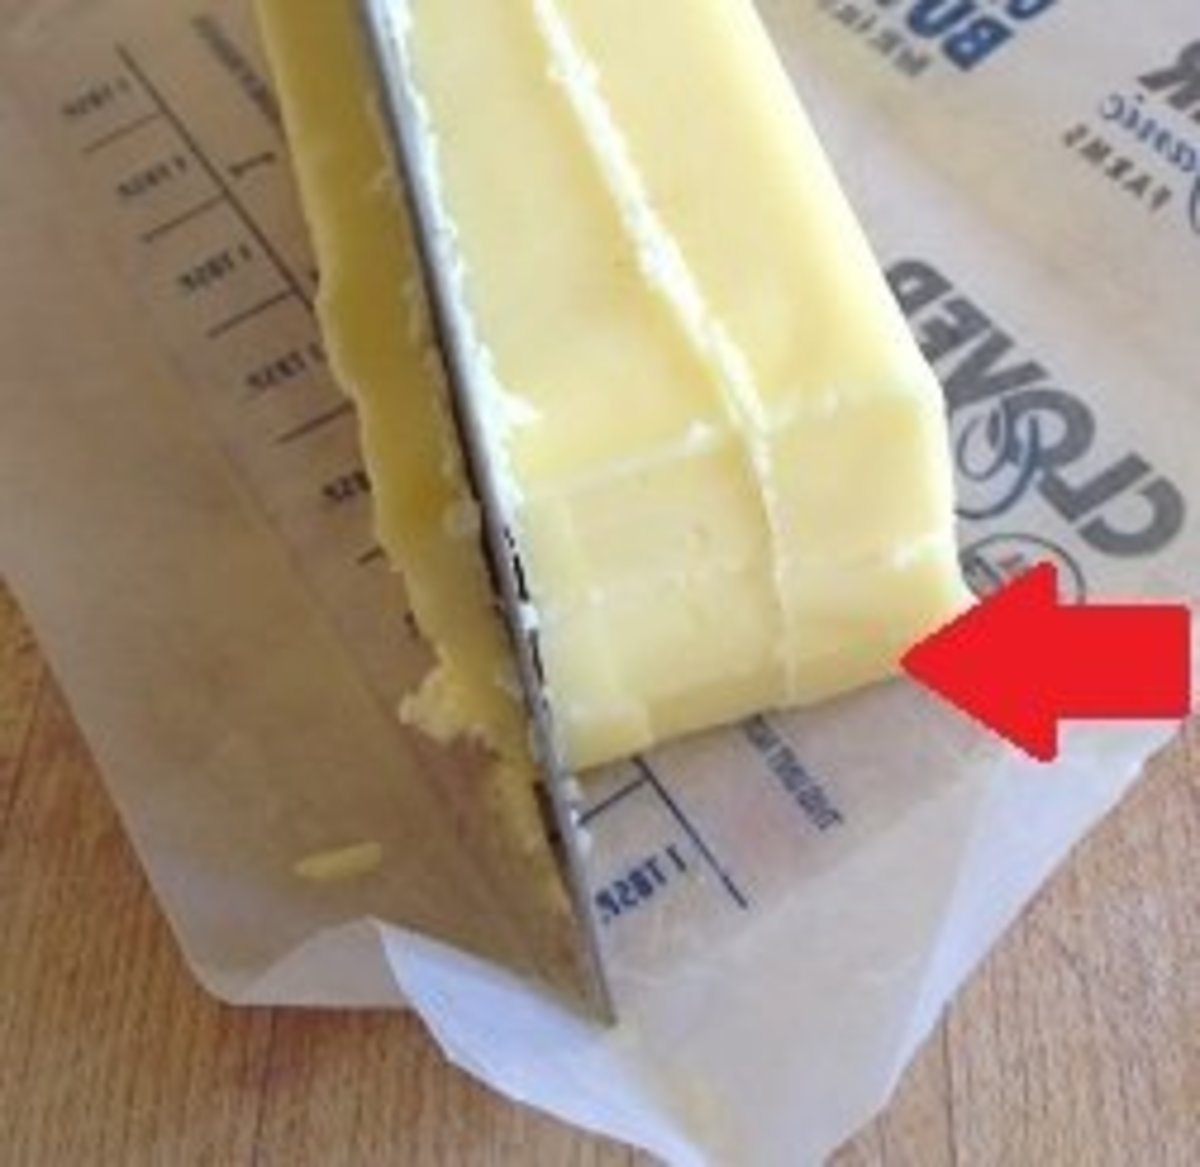 Follow the link to learn how to get soft butter in less than 20 minutes